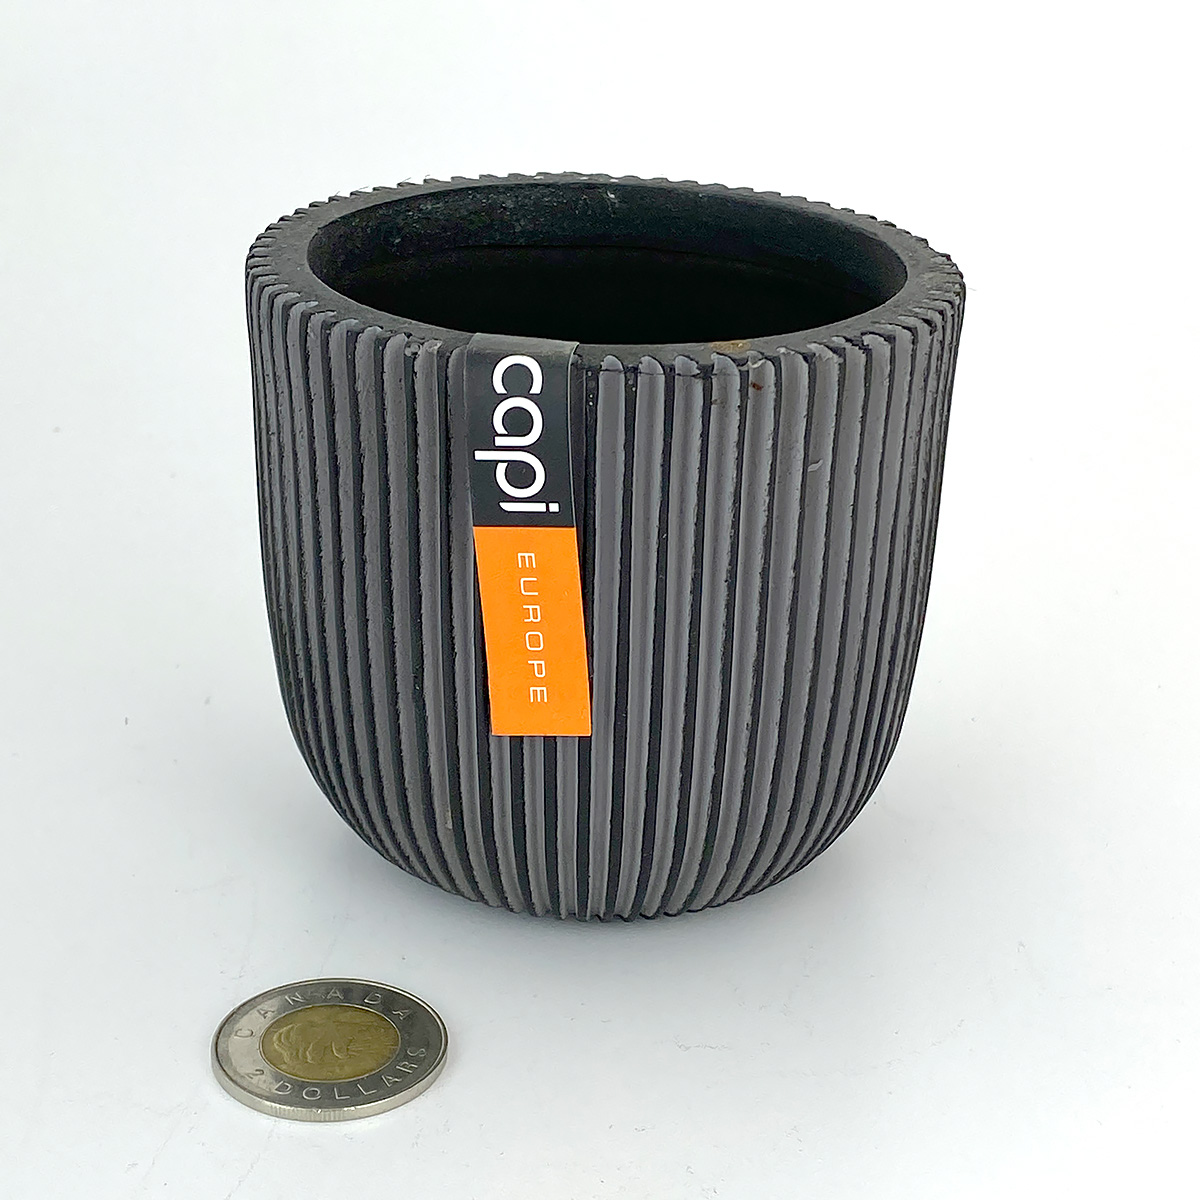 Capi_Groove_Black_Planter_Ball_Pot_10x9.jpg